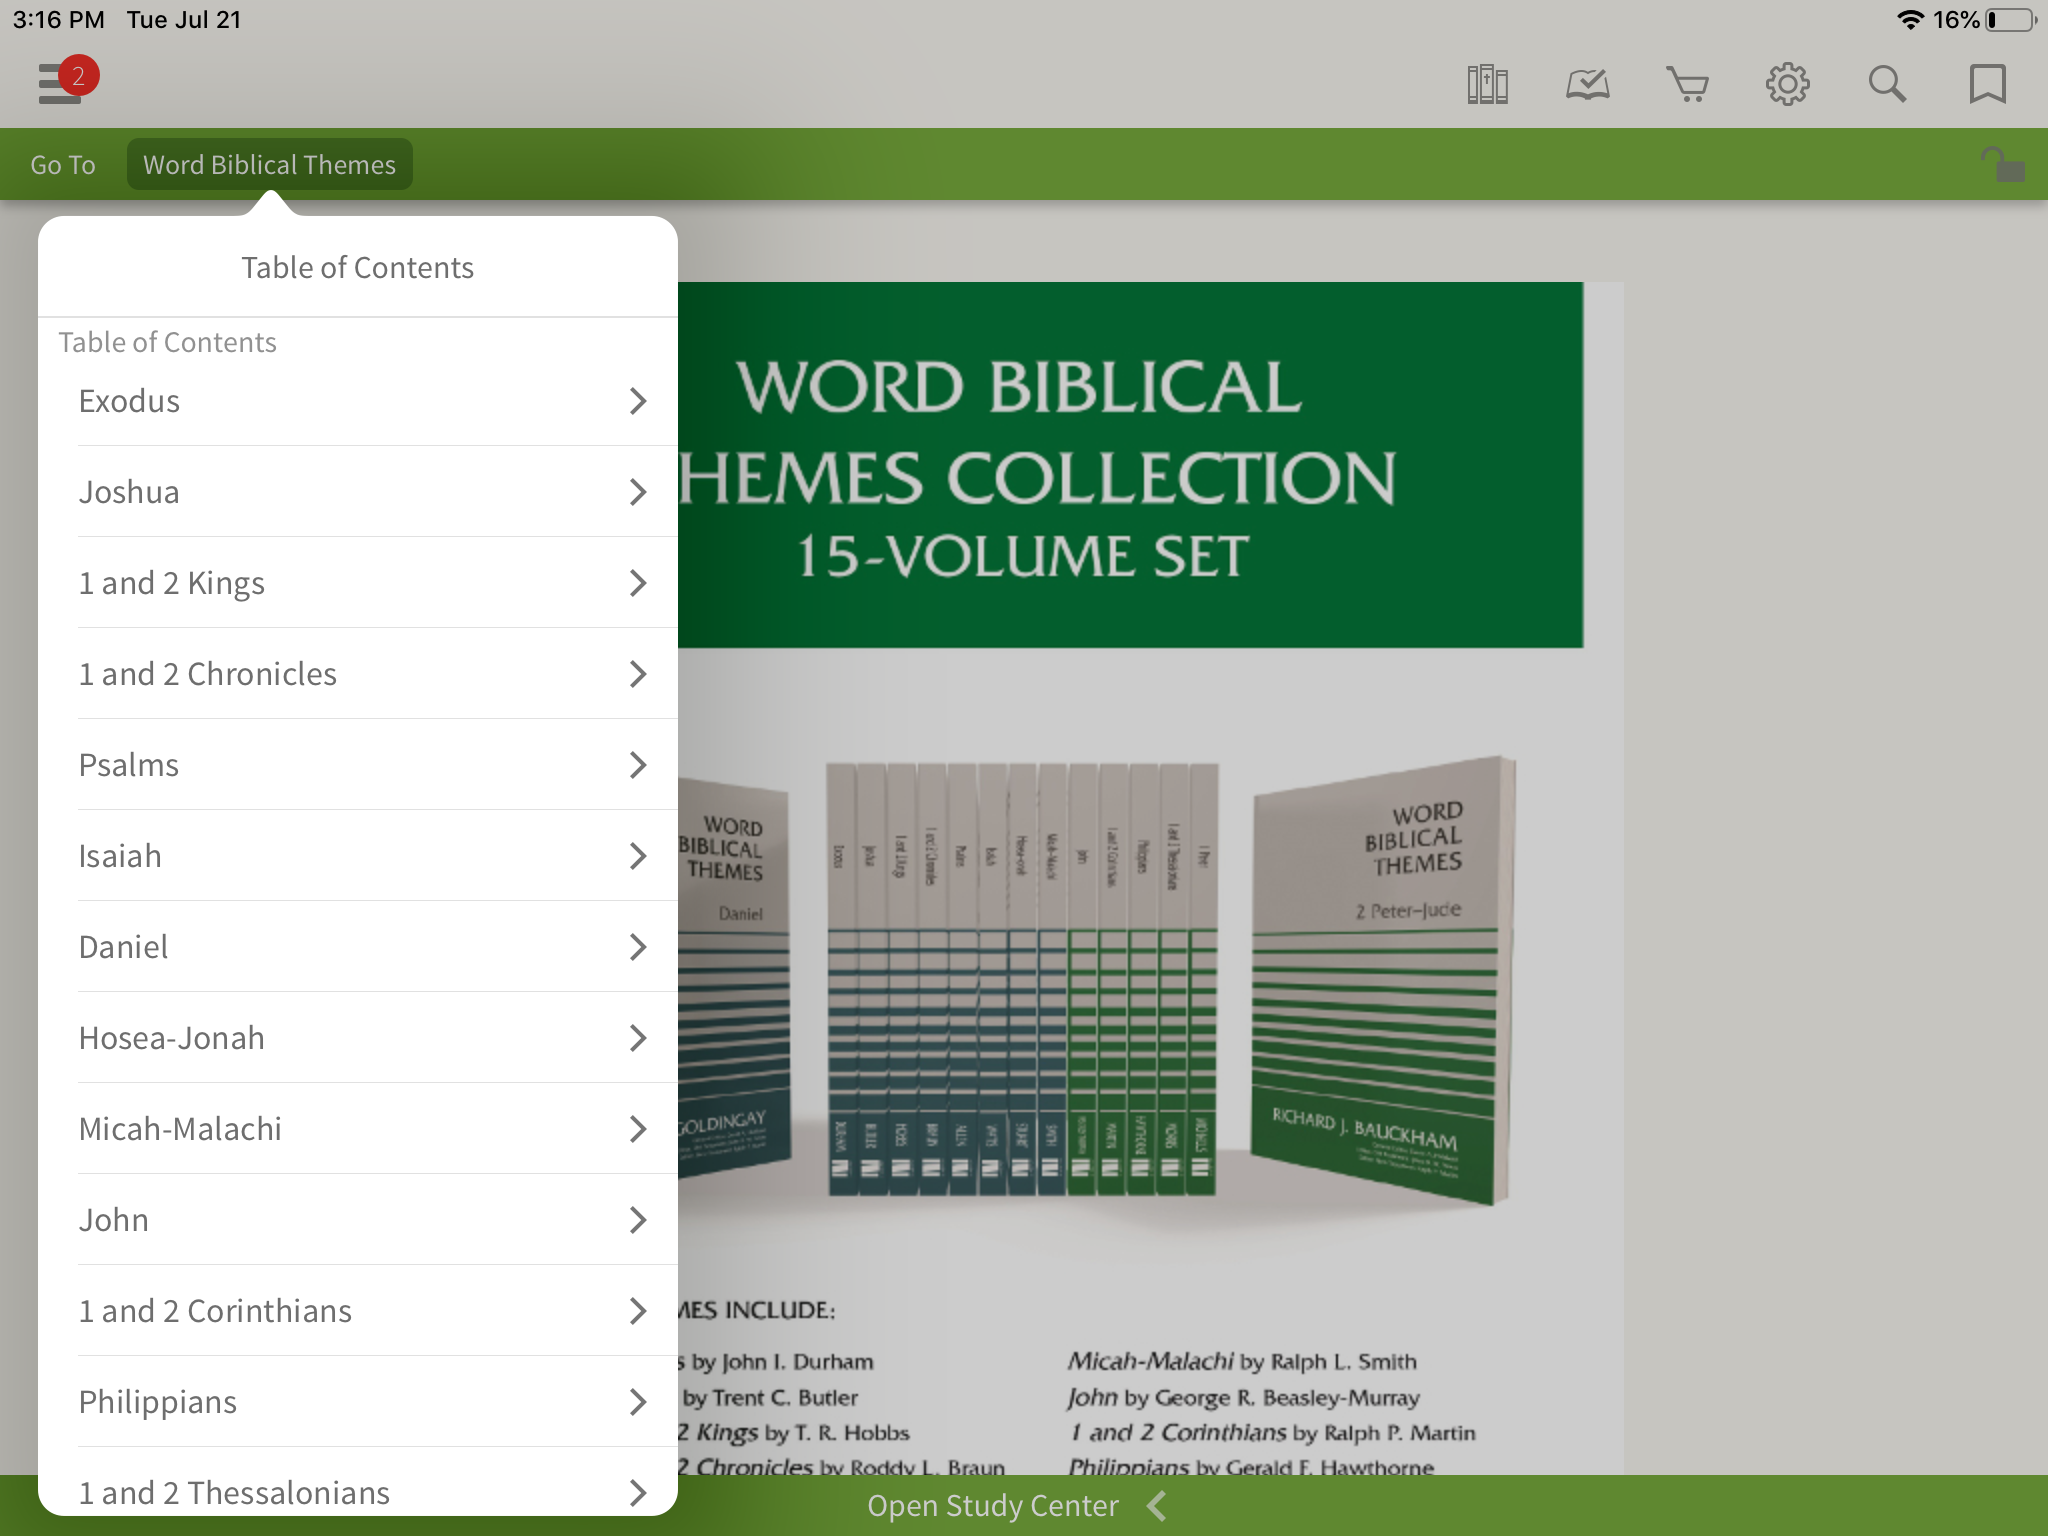 Table of Contents for the entire Word Biblical Themes series